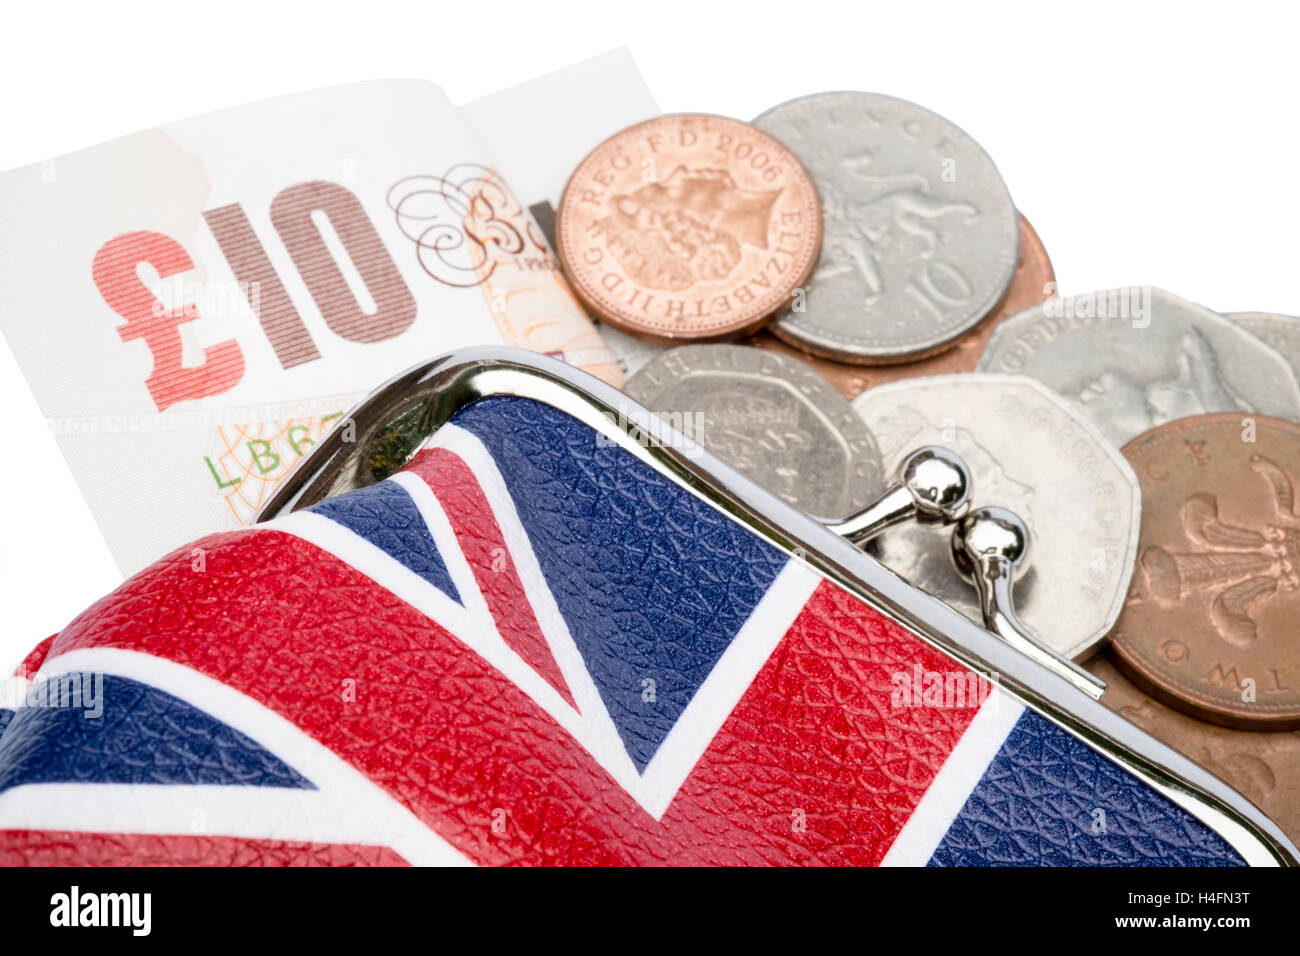 Purse with coins money & £10 pound note spilling out. Union Jack design. - Stock Image